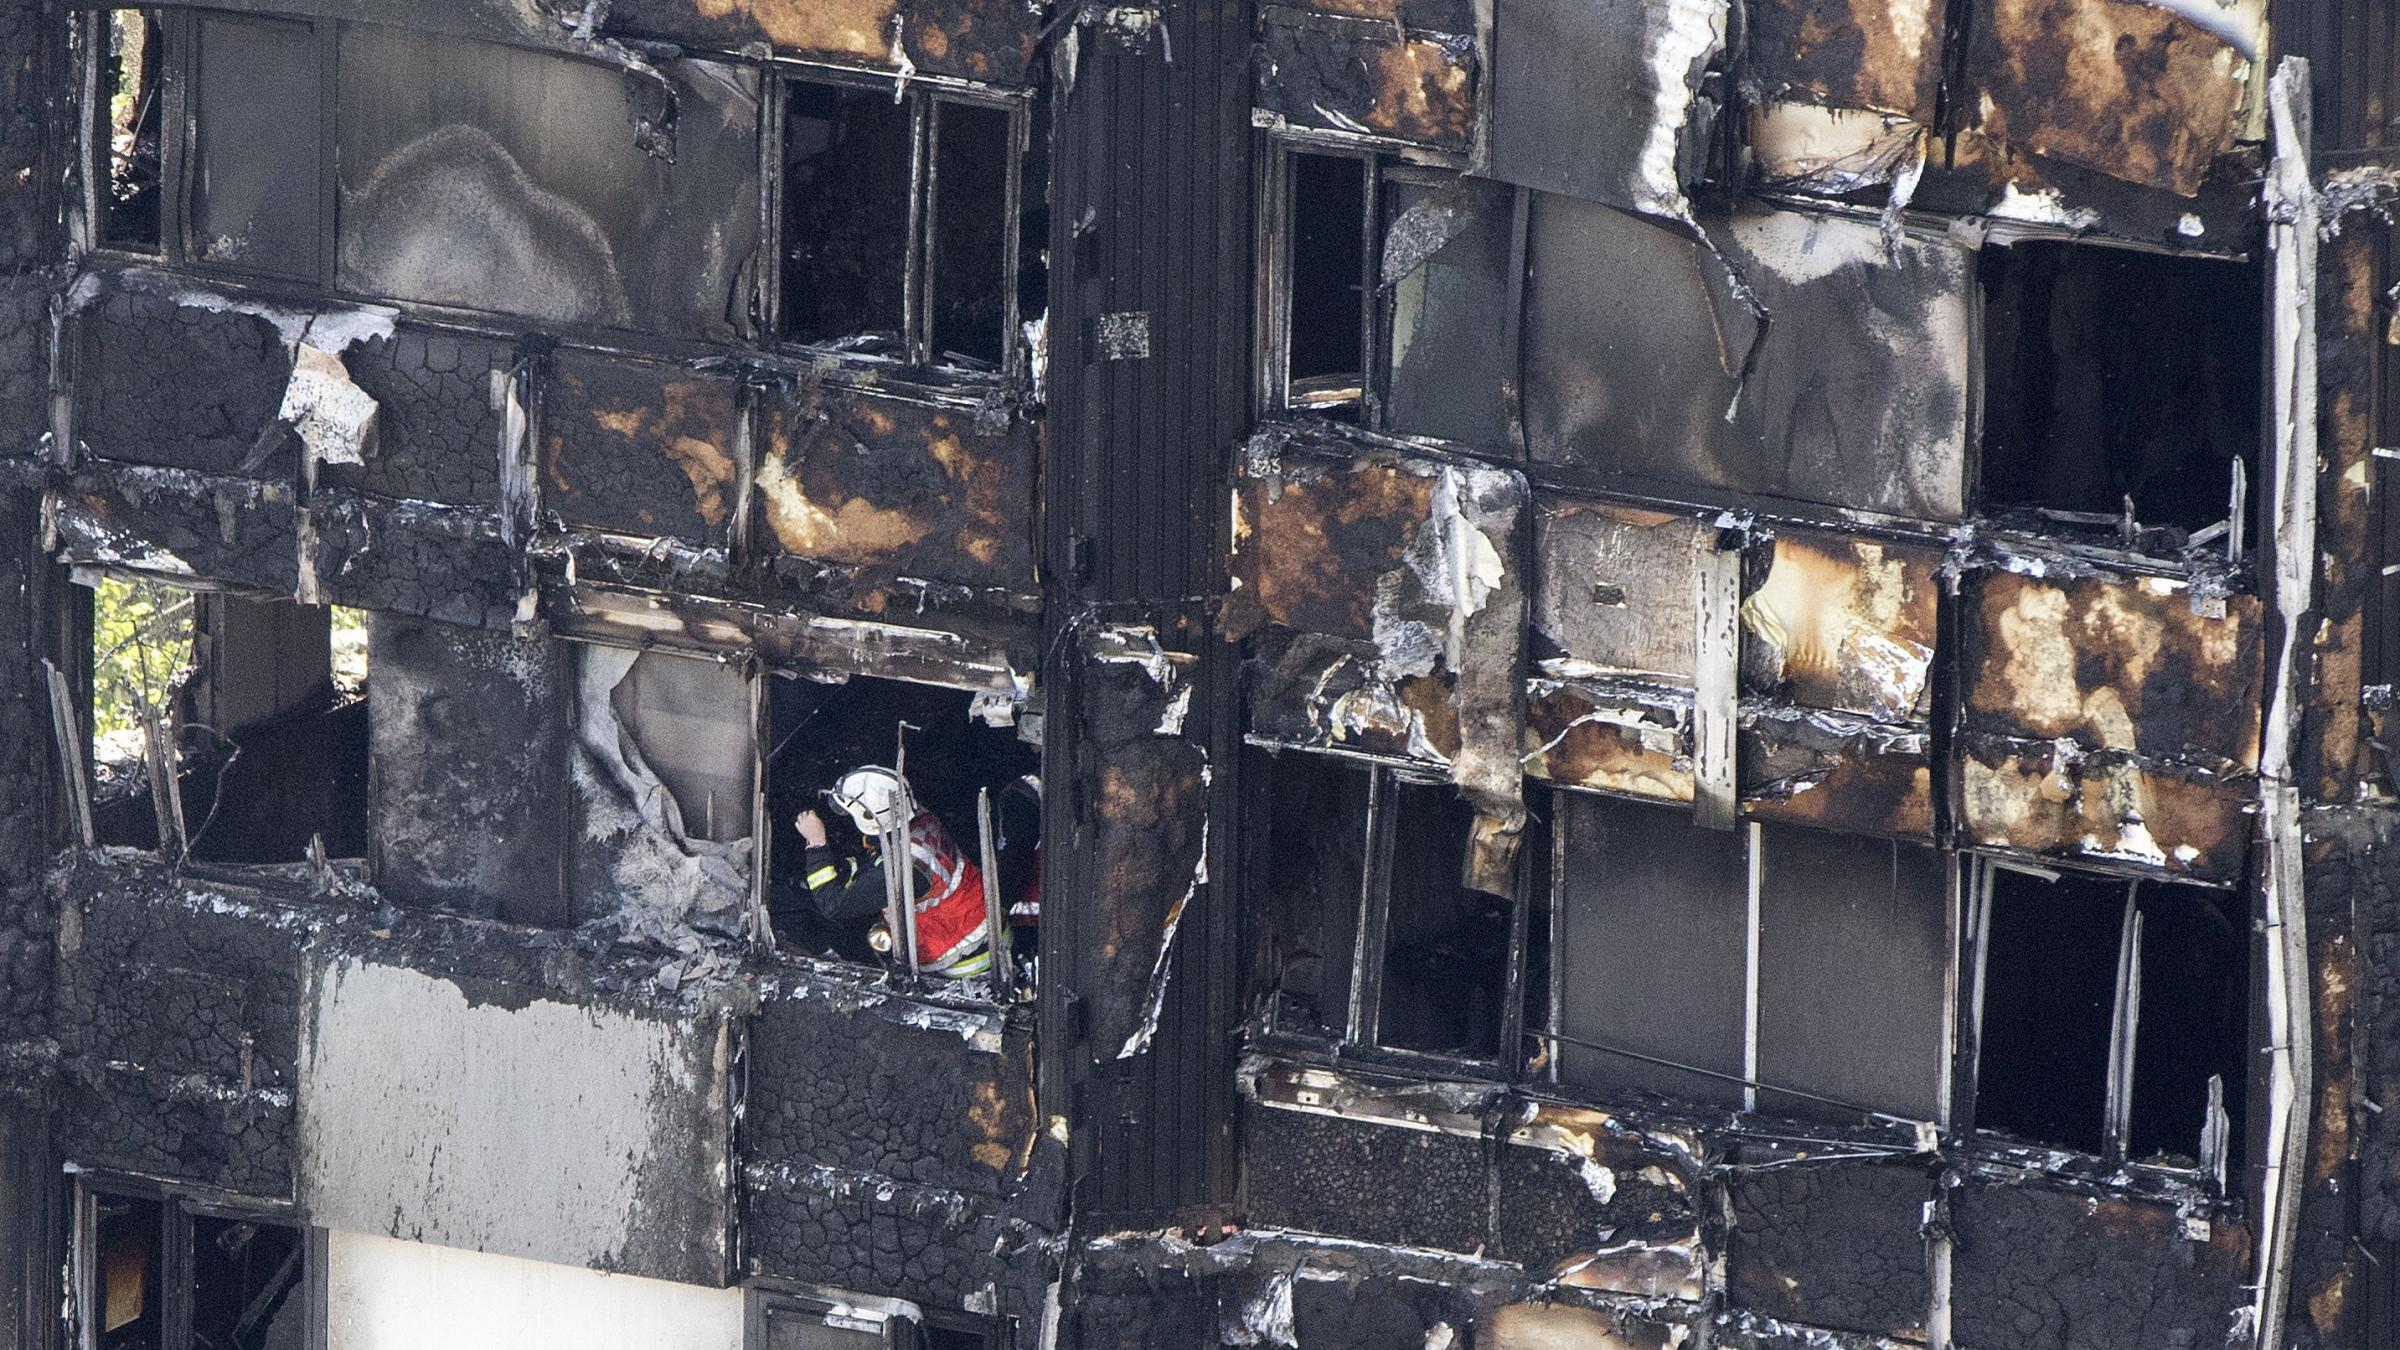 6 dead in London highrise fire